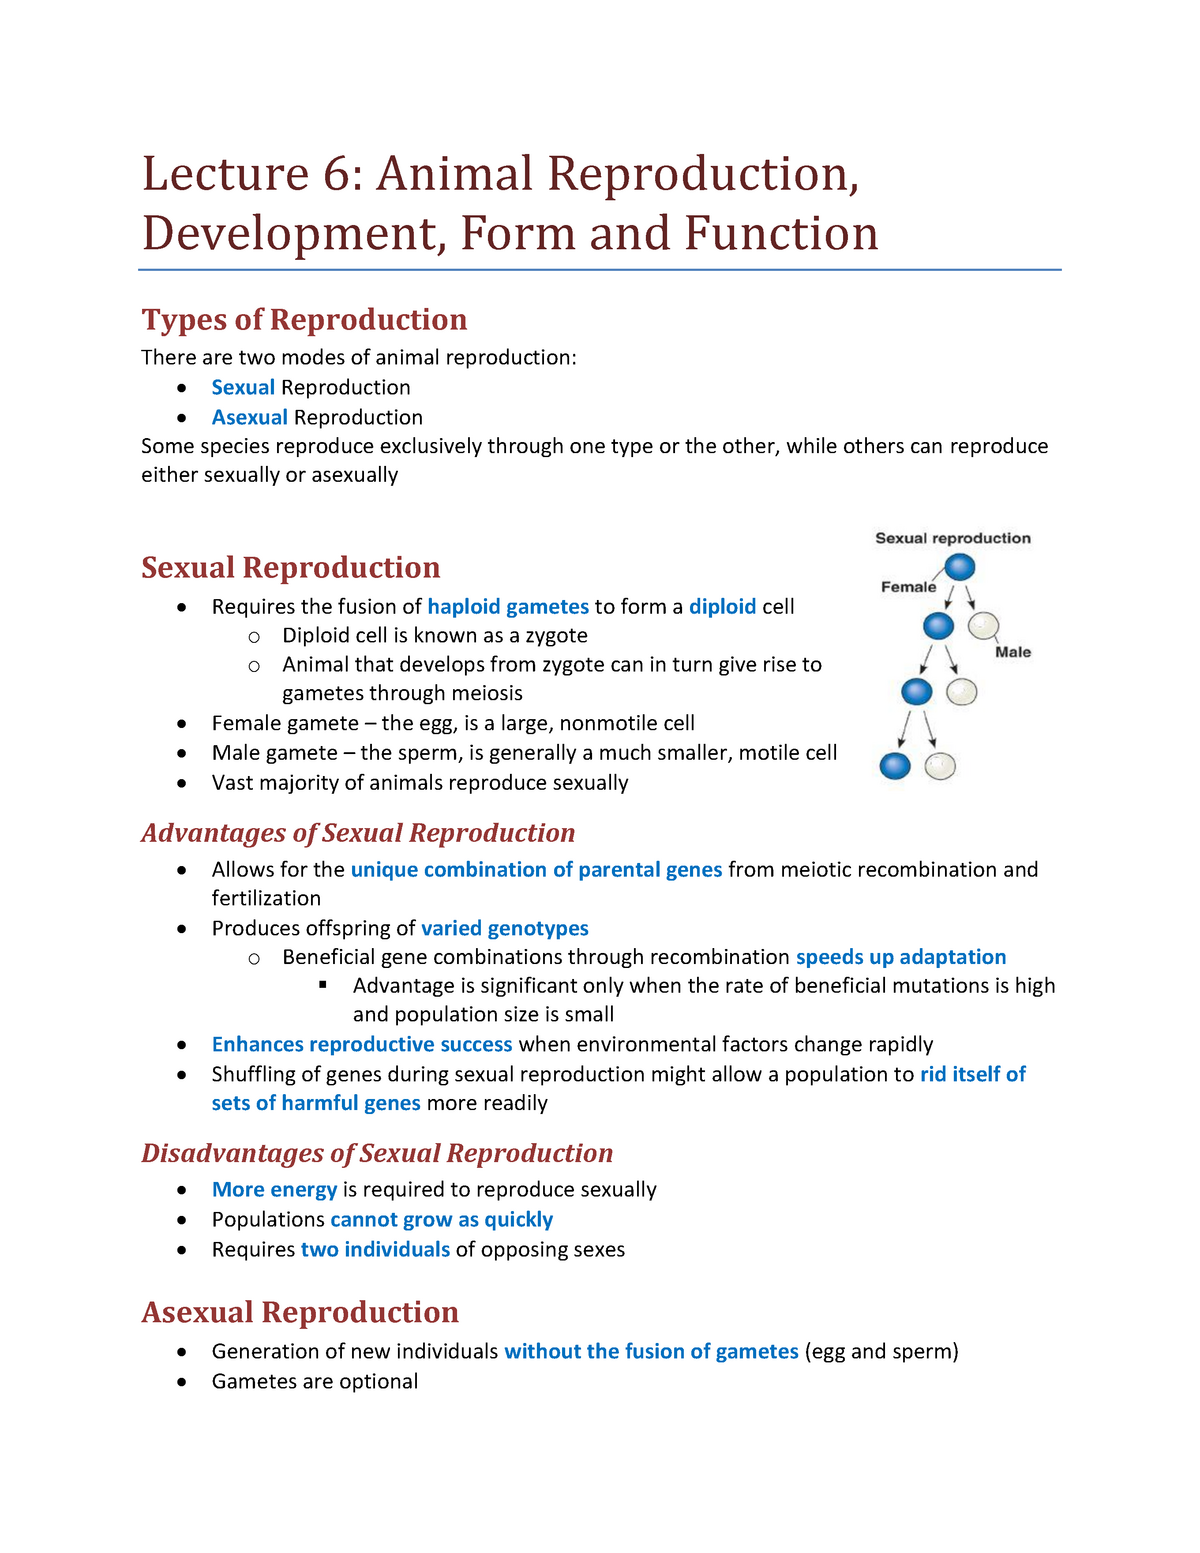 Lecture 6 - Reproduction, Development, Form and Function - BIOL 1030 ...